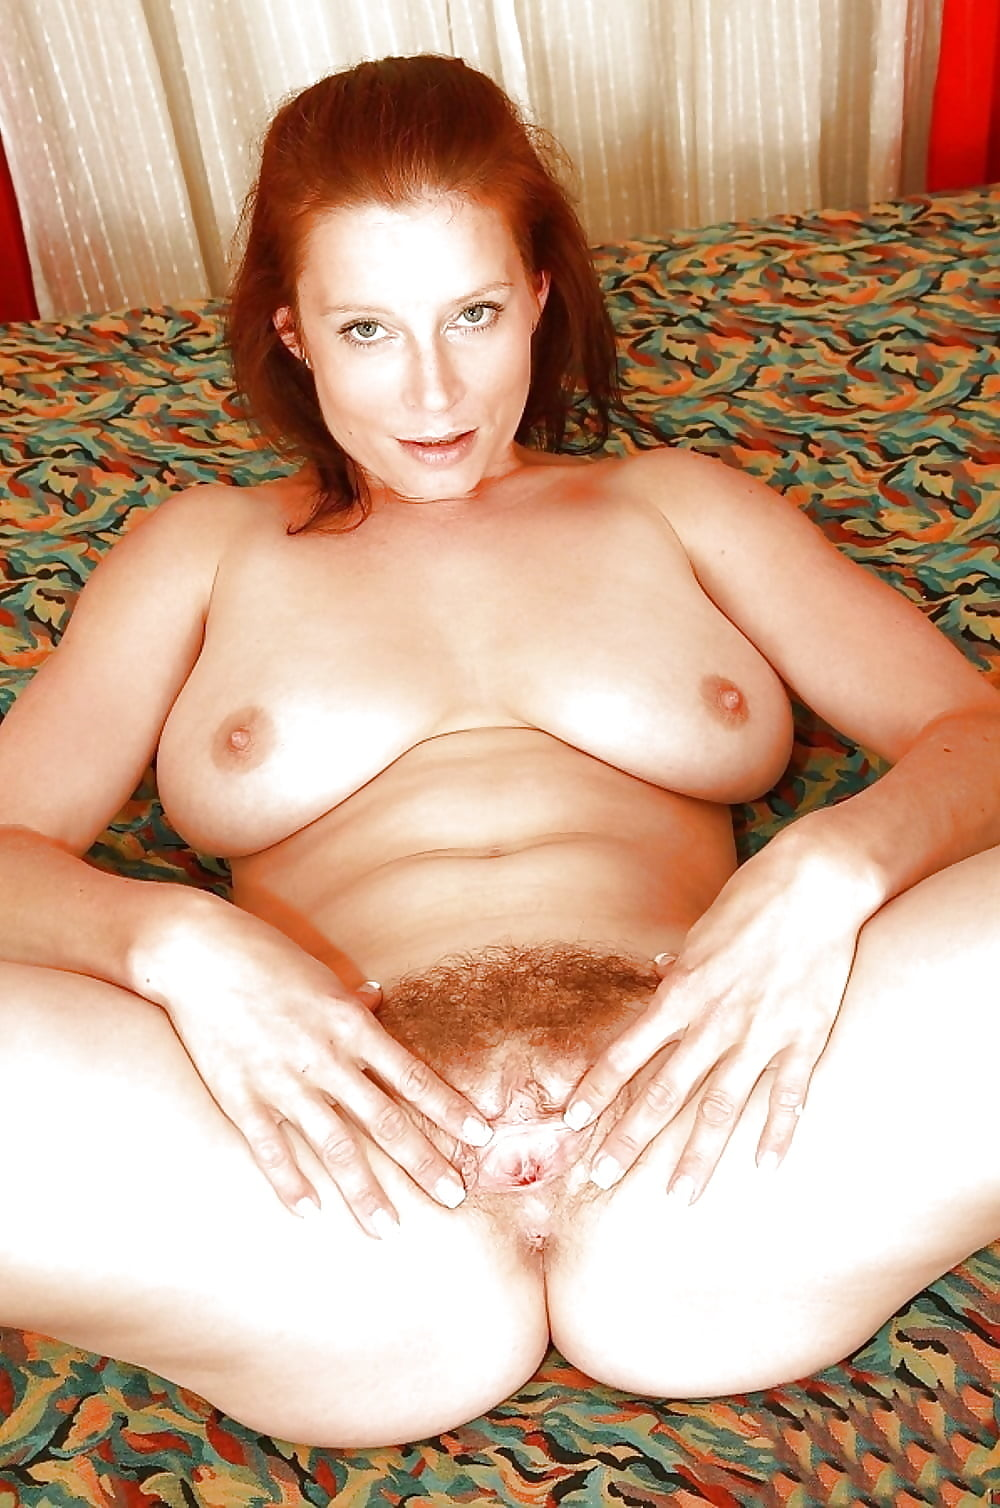 sexy-ginger-woman-stacked-milf-porn-party-trailers